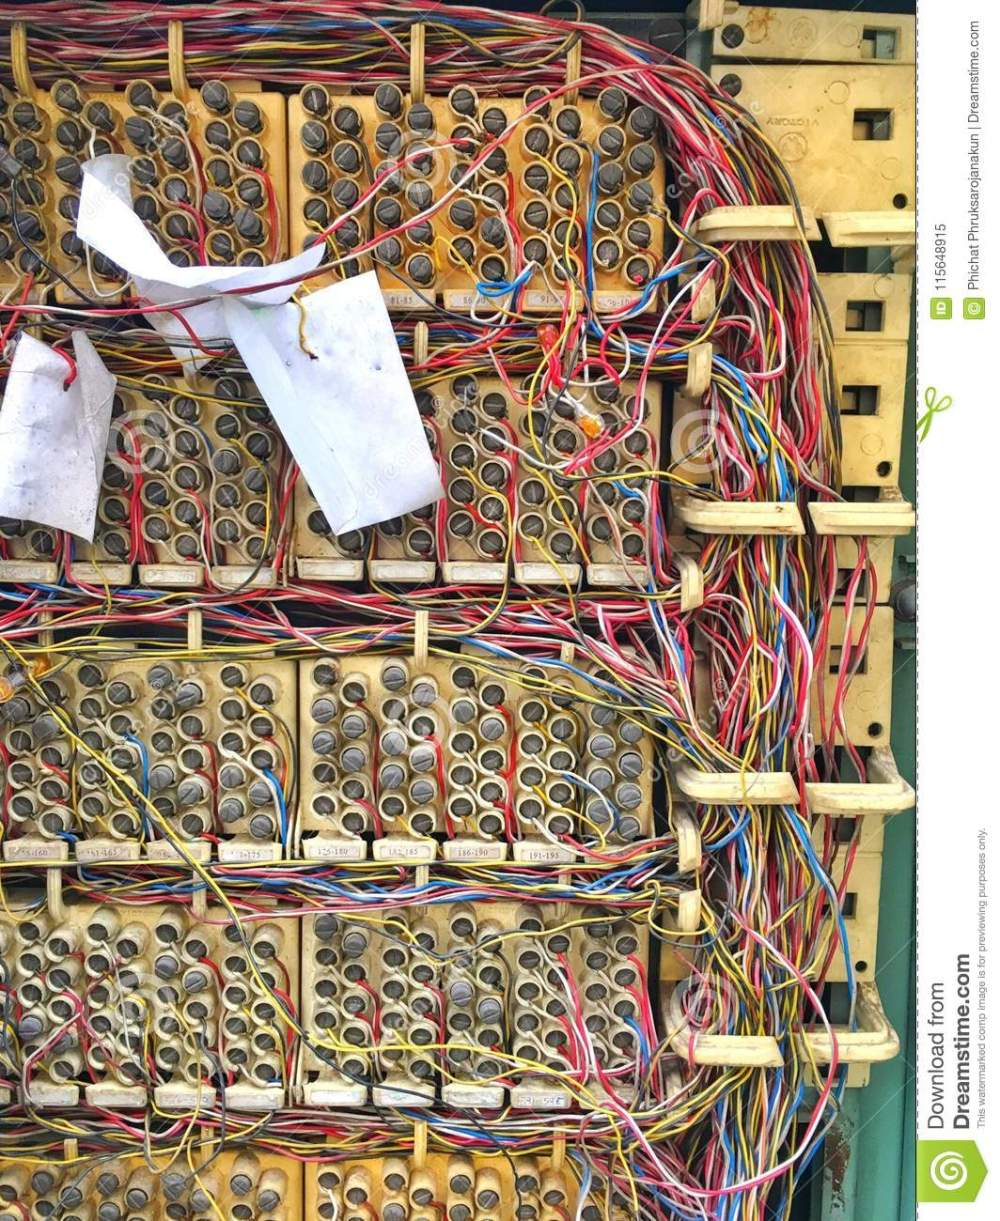 medium resolution of telephone exchange circuit and system in the cabinet control with messy copper wire jumping on the board